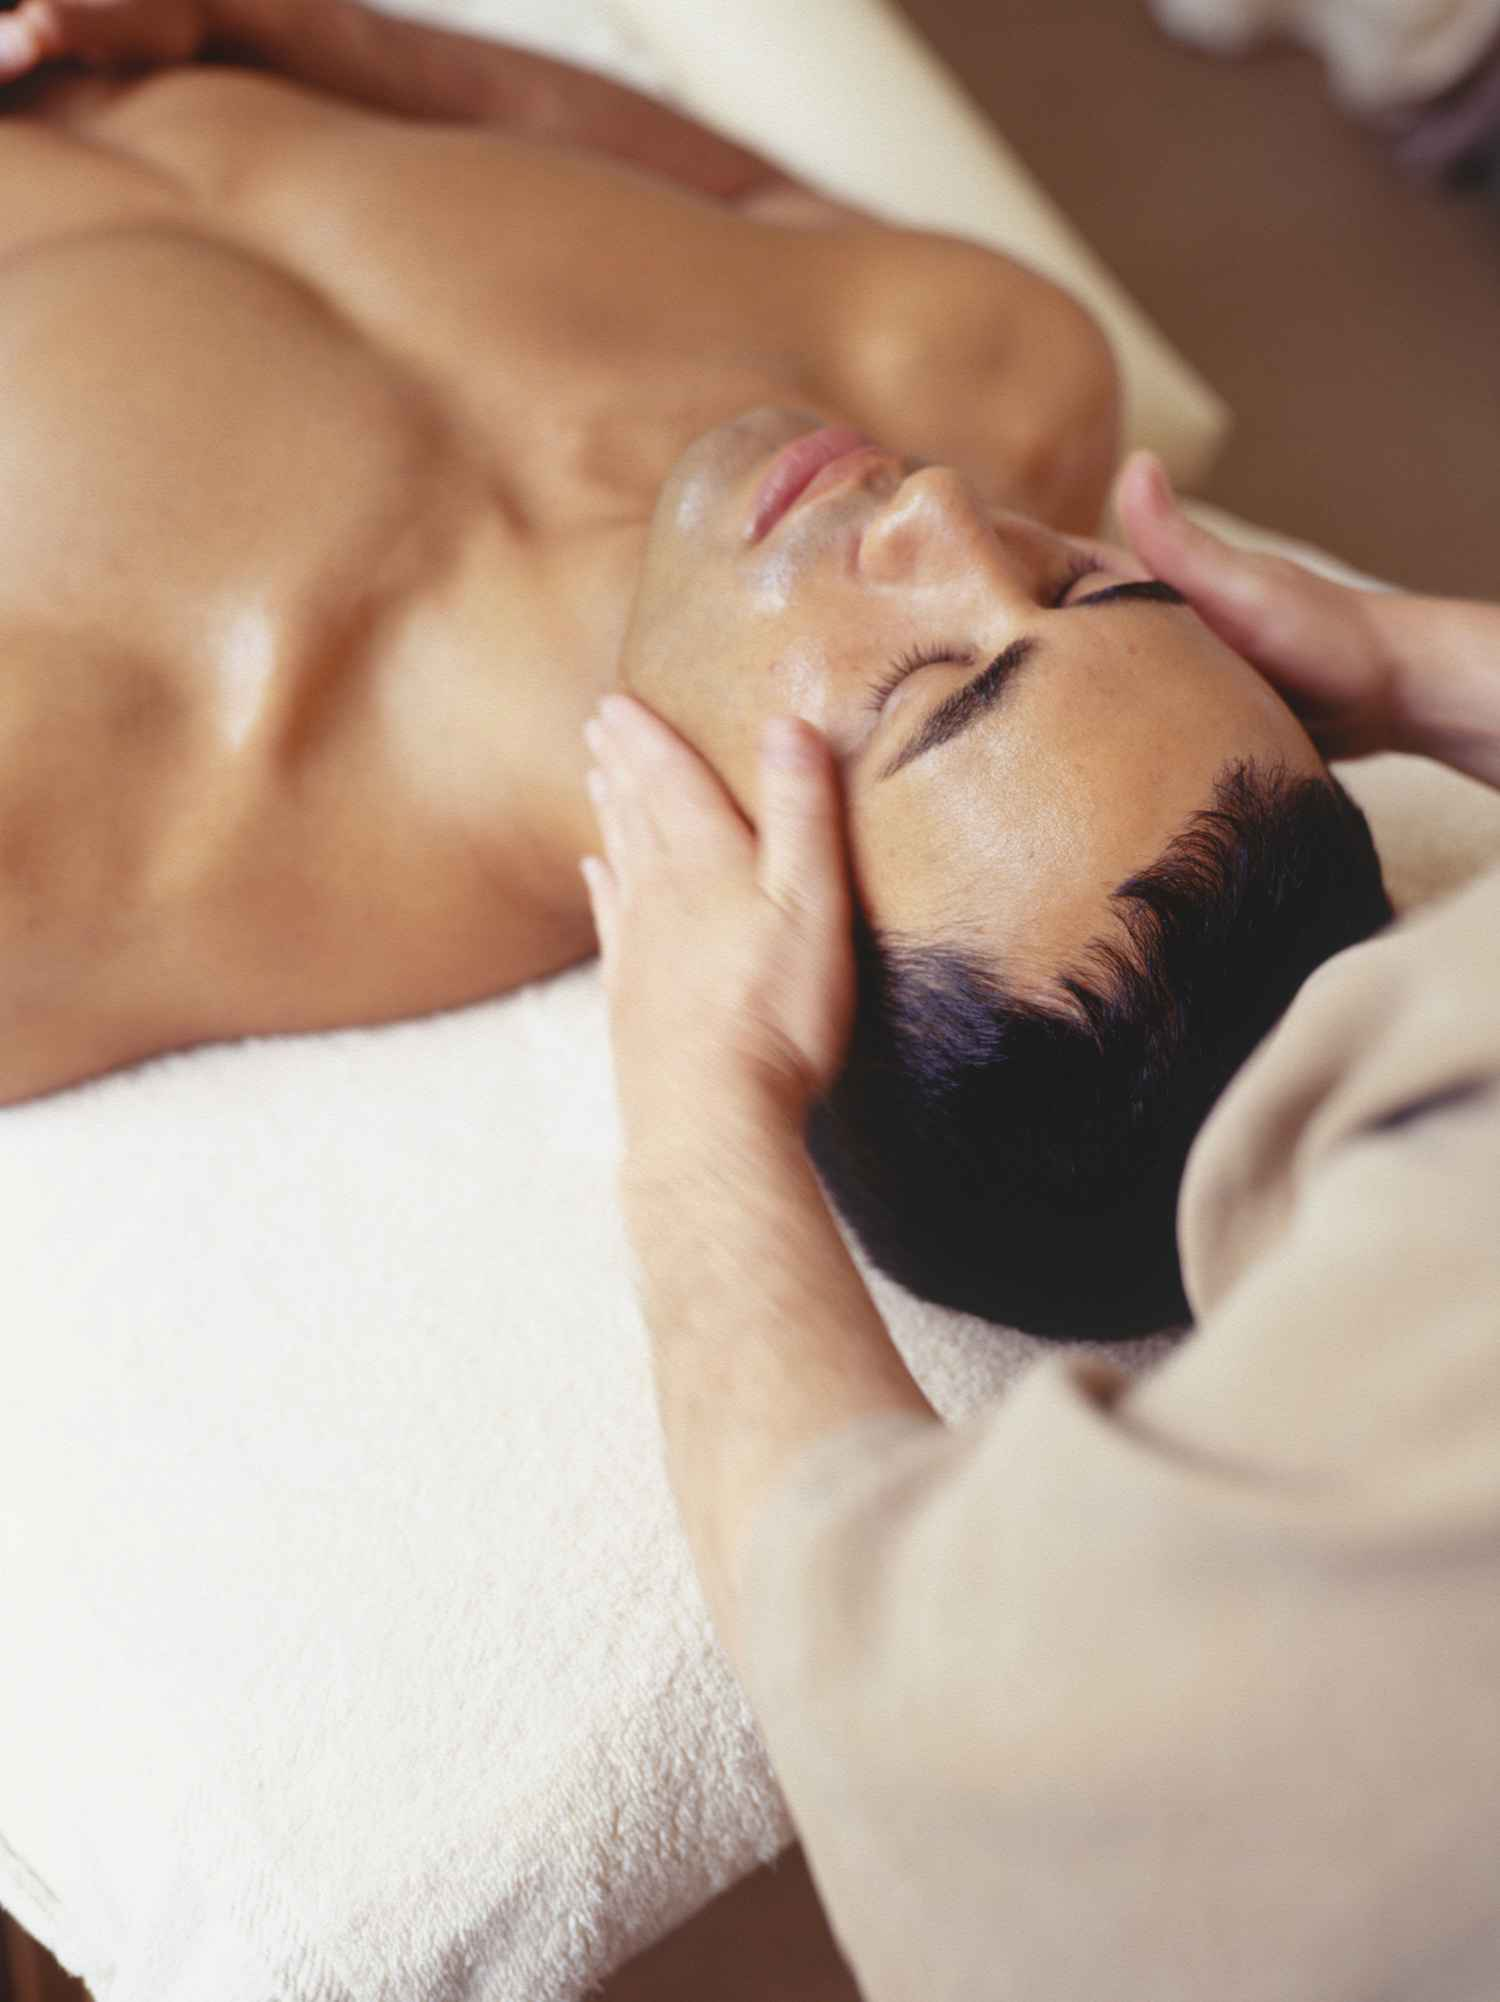 A Sensual Massage how to give a sensual massage to men   2bstronger